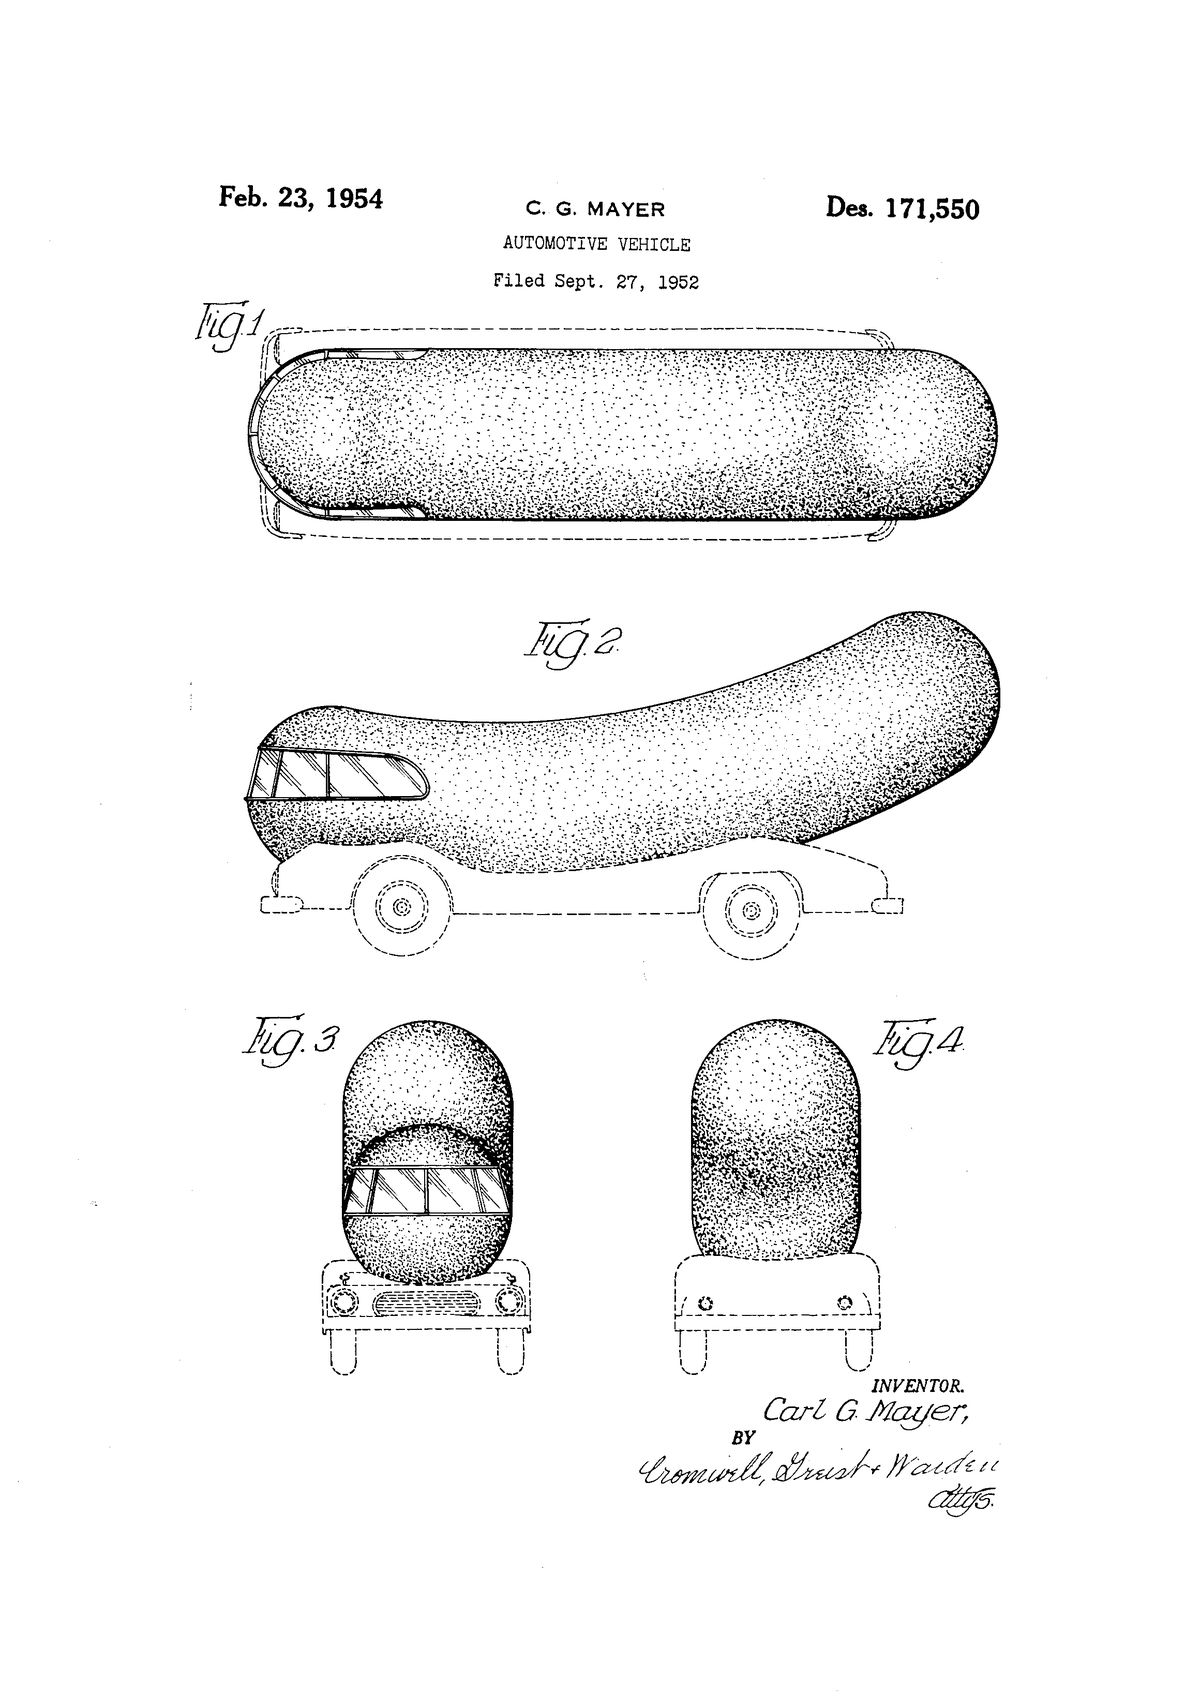 The full illustrations for the Weinermobile patent